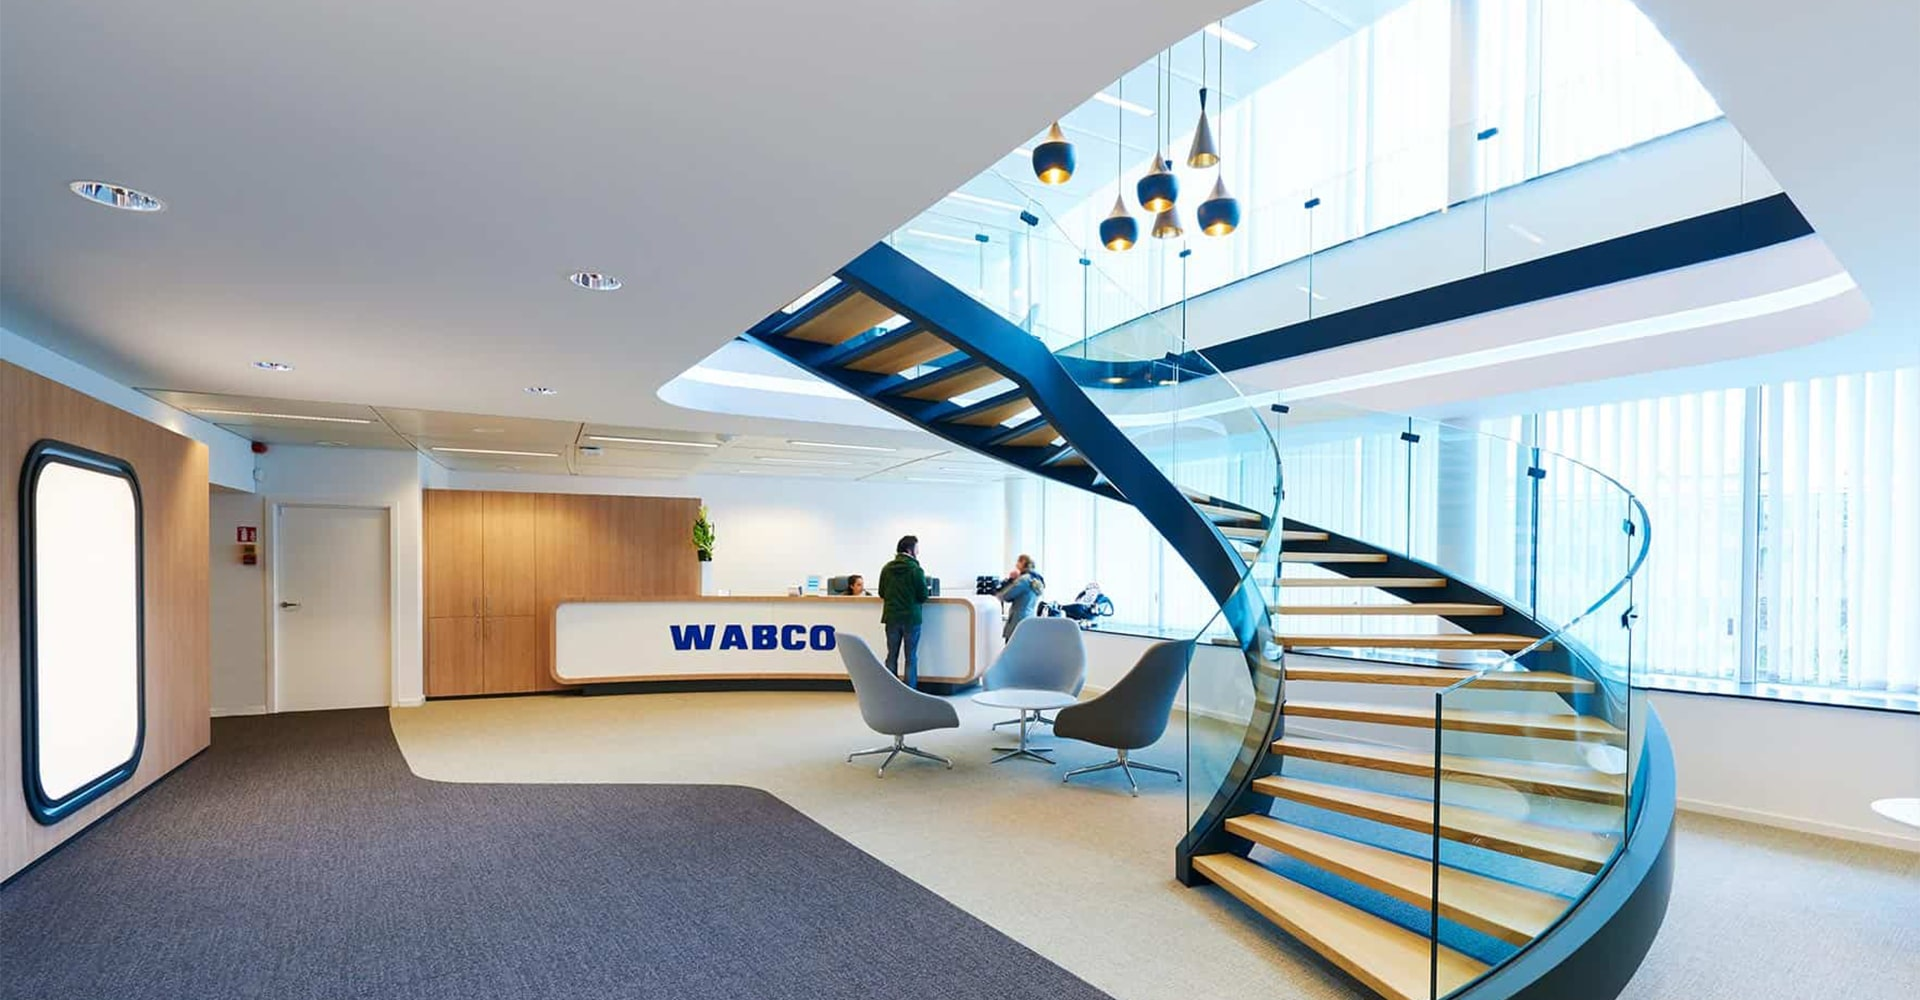 Large and bright reception area at Wabco HQ